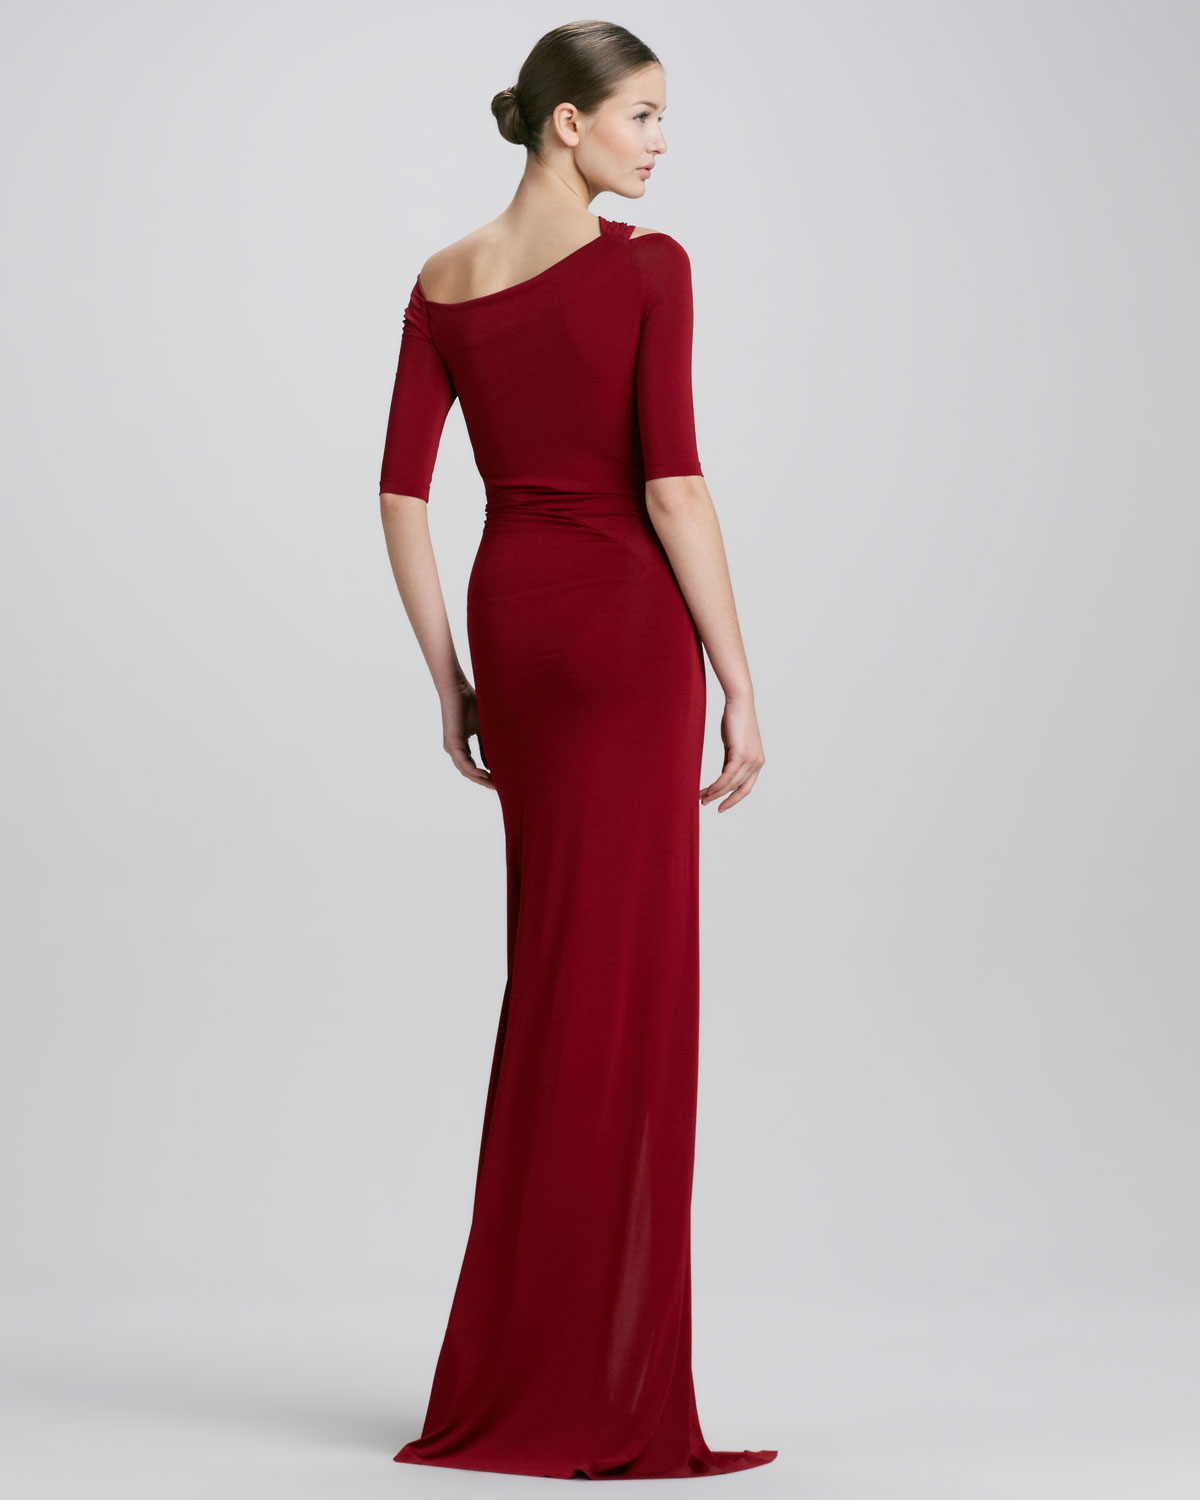 Donna Karan Evening Dresses Cocktail Dresses 2016